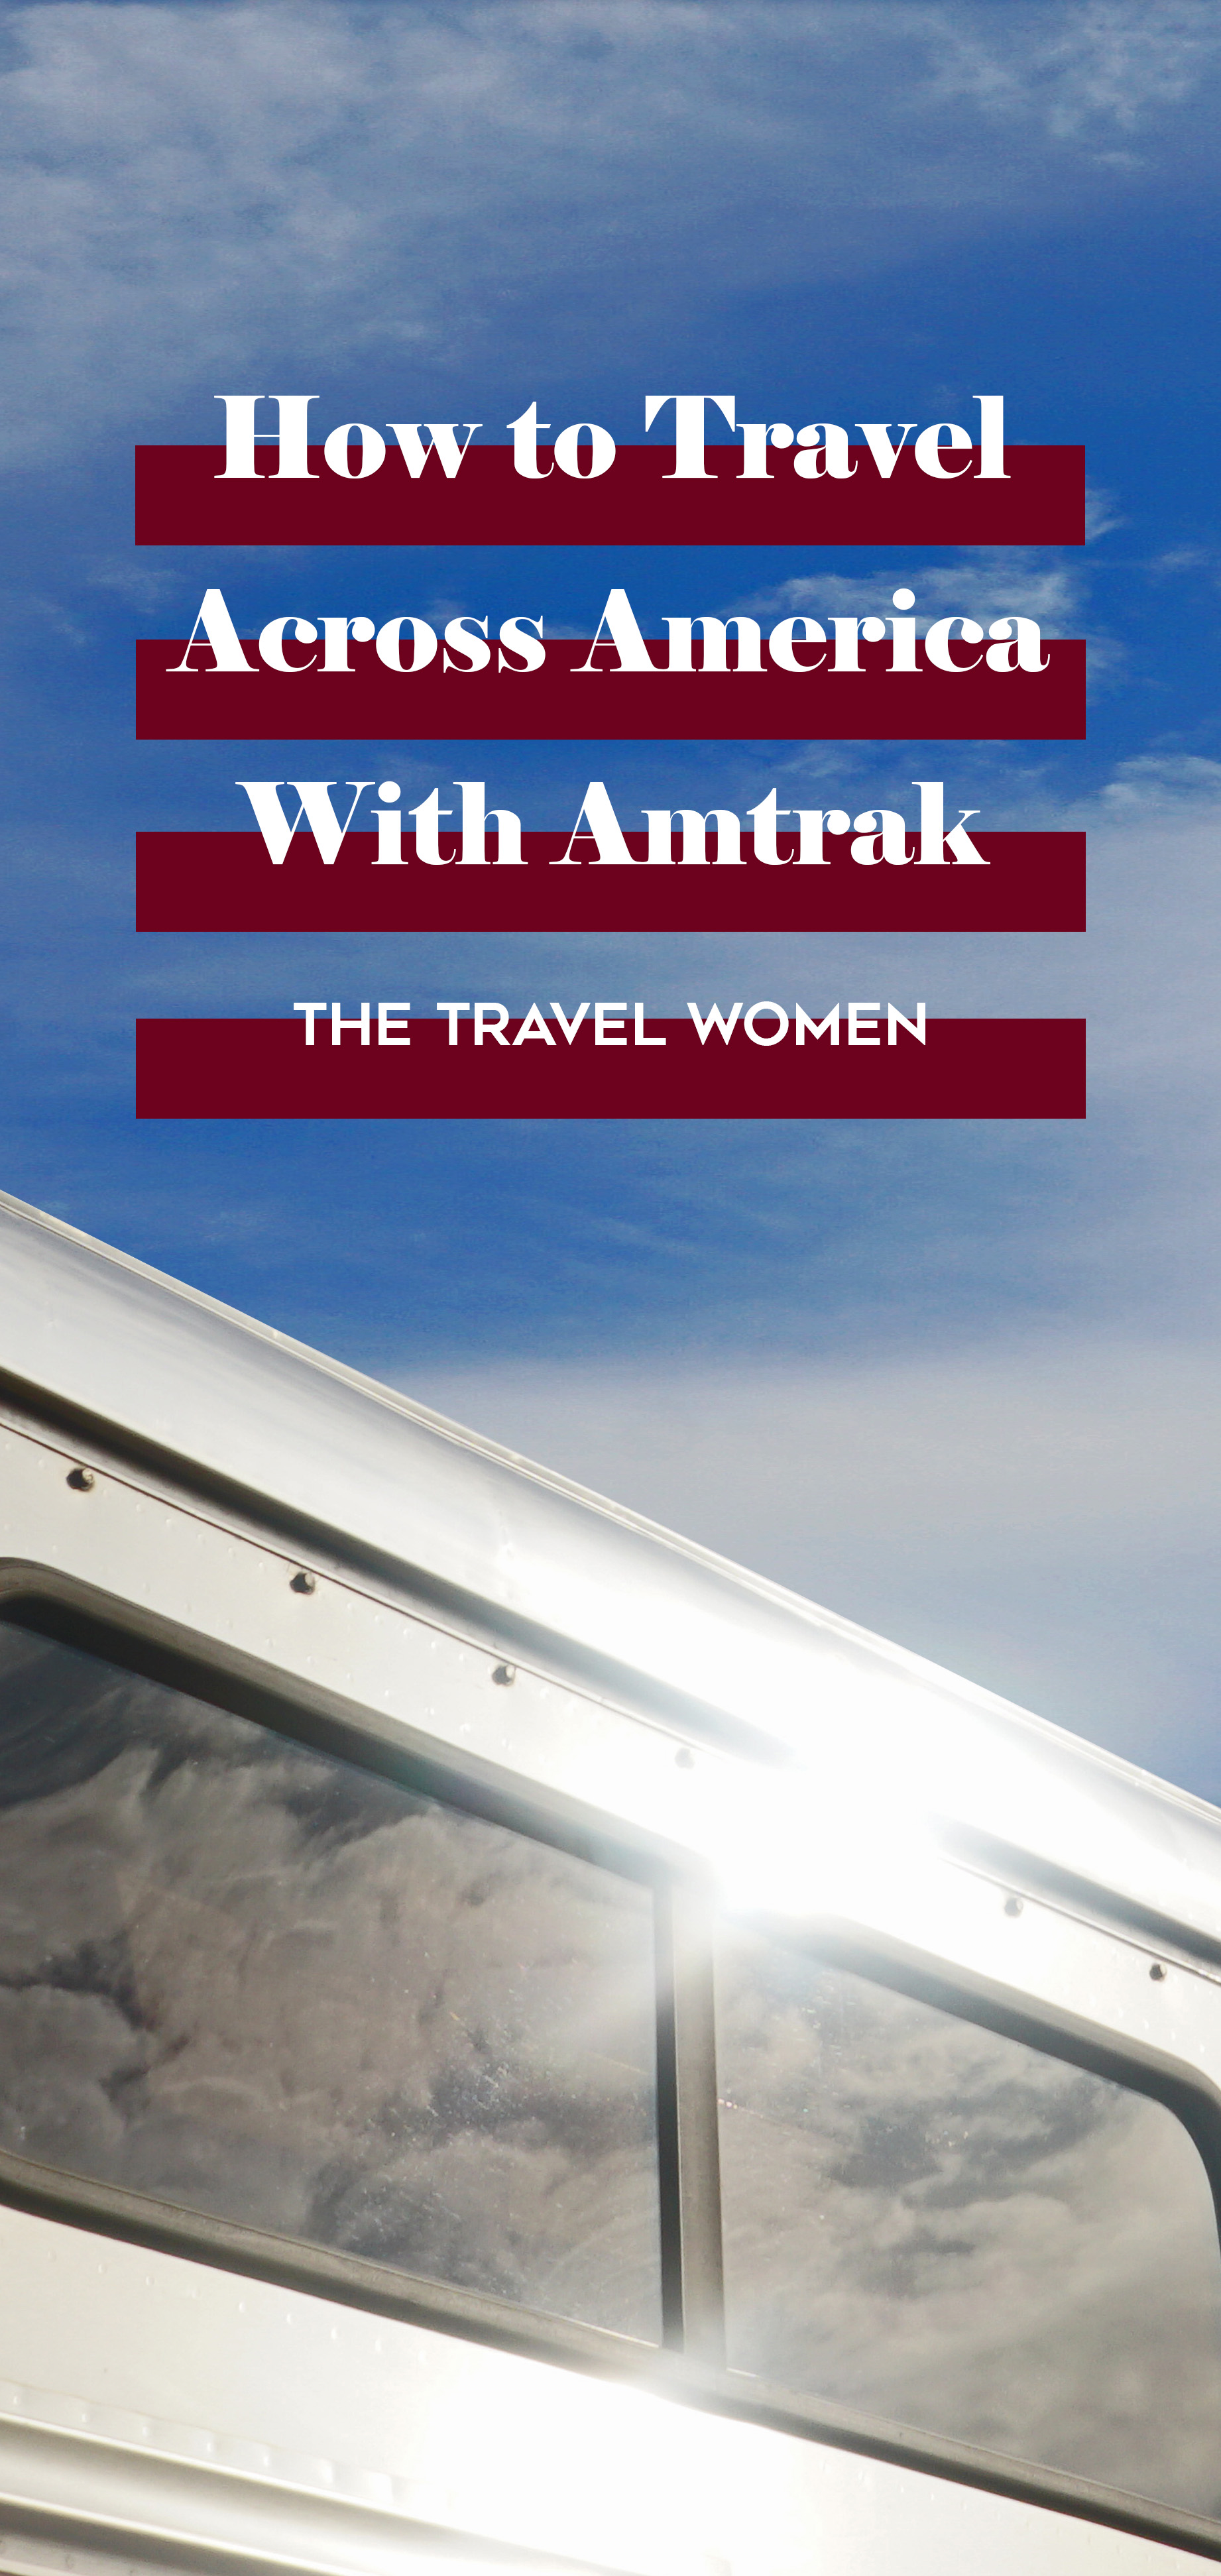 How to Travel Across America With Amtrak sun on train